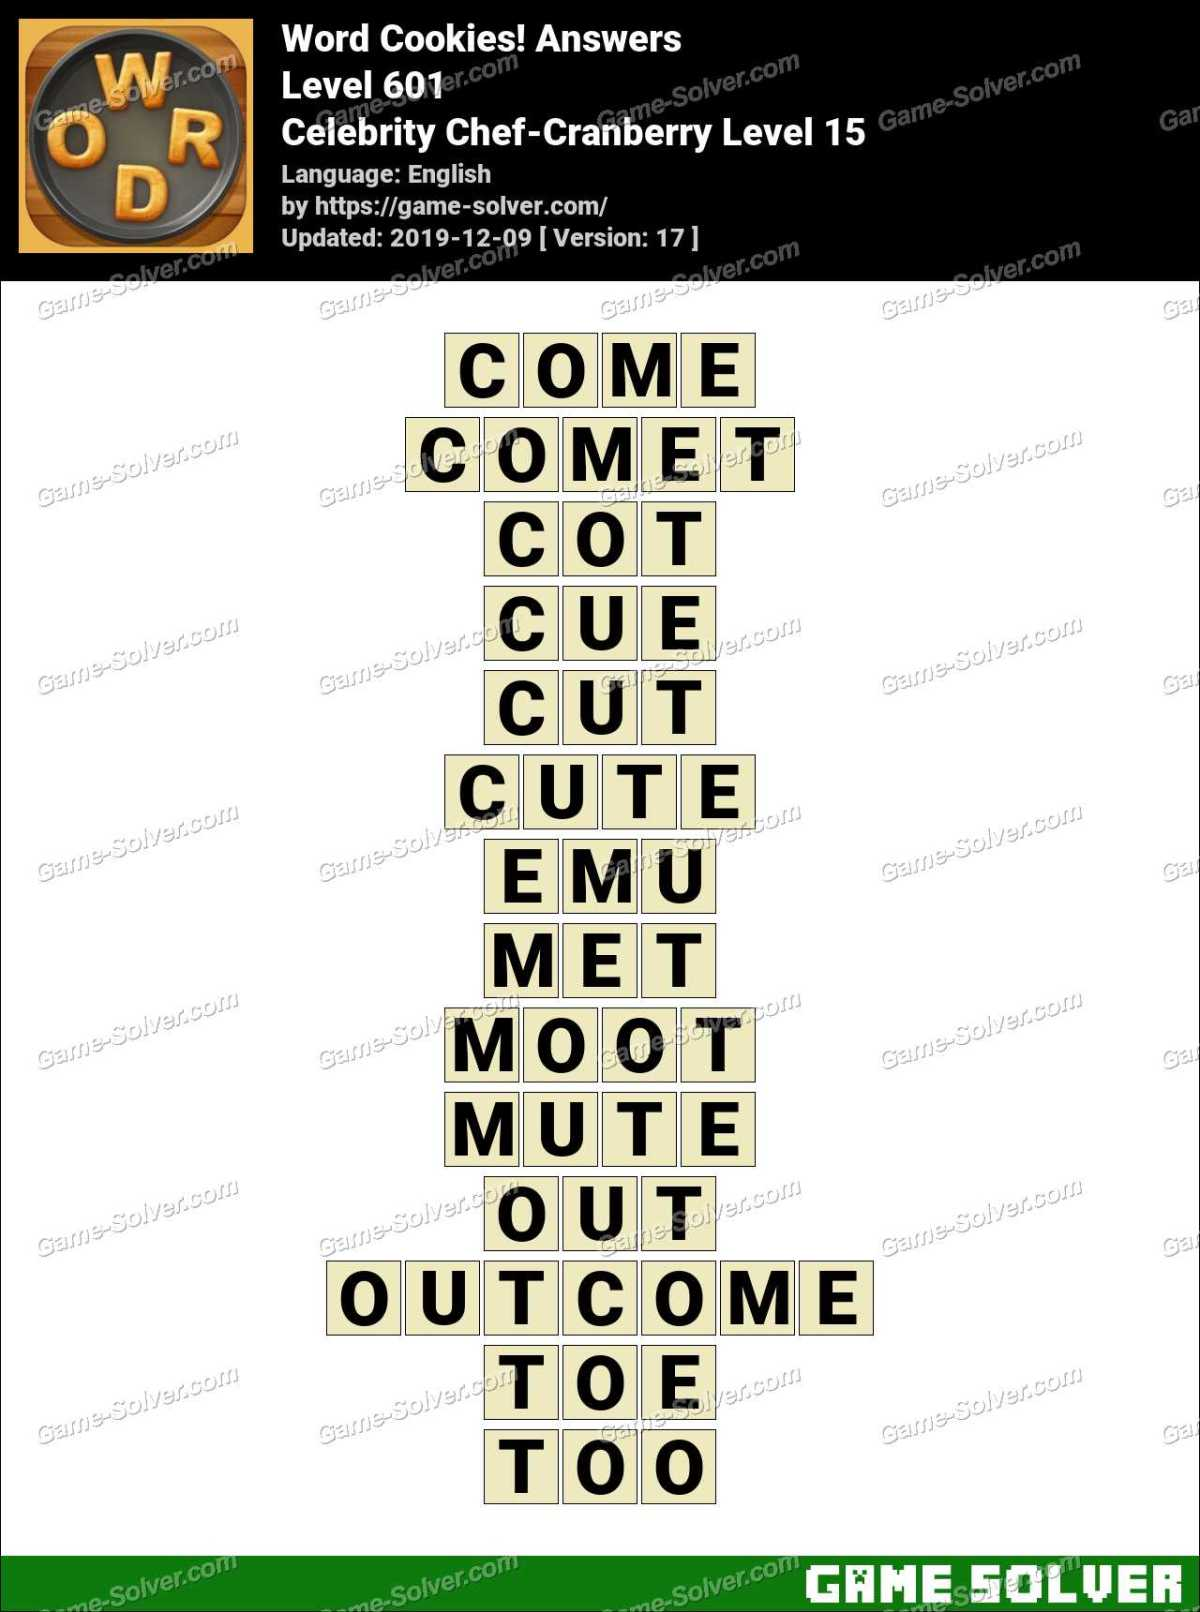 Word Cookies Celebrity Chef-Cranberry Level 15 Answers